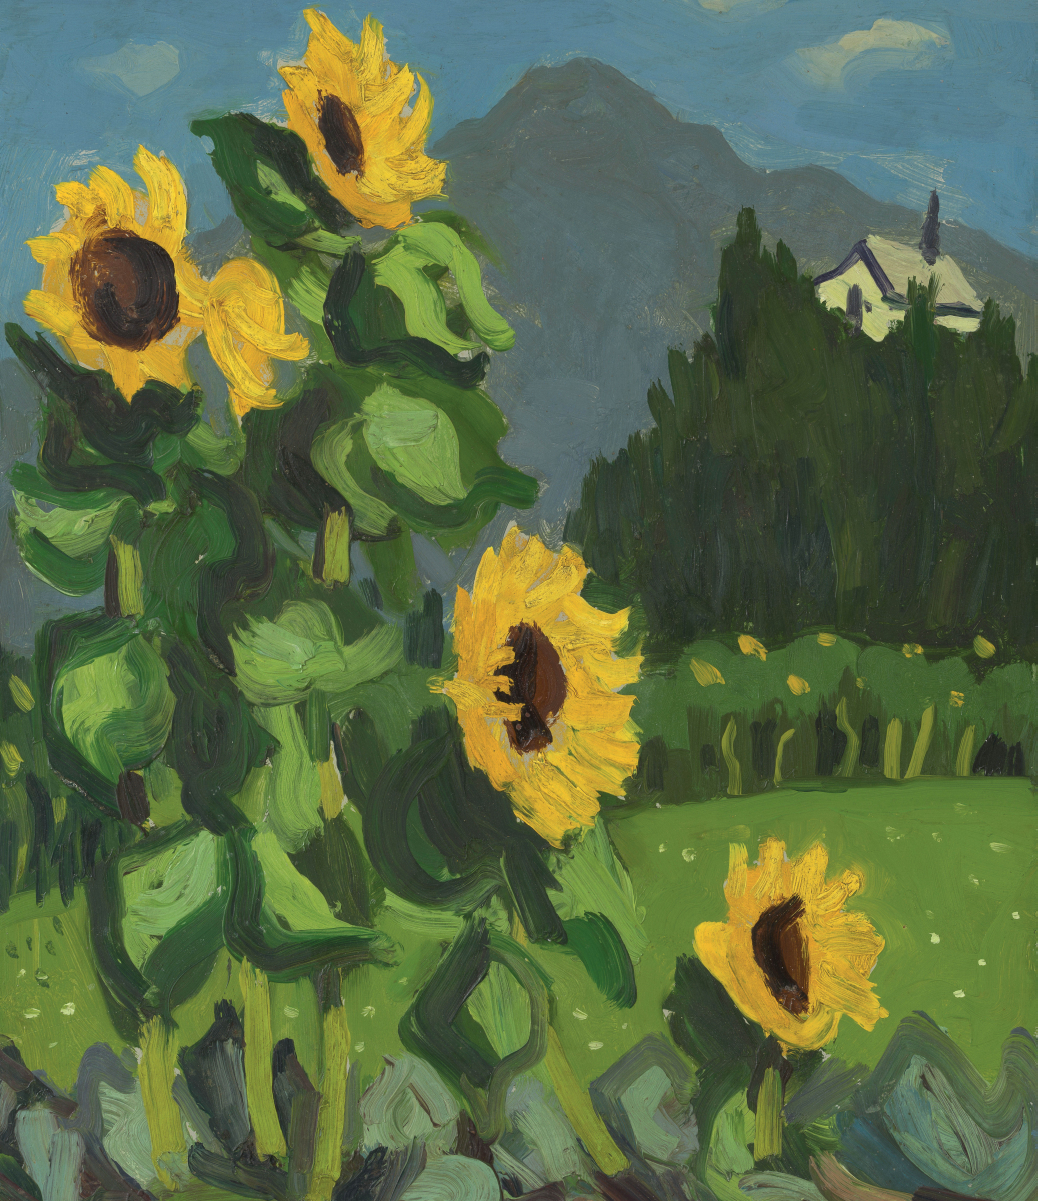 'Sunflowers with Mountains Beyond' by Kyffin Williams